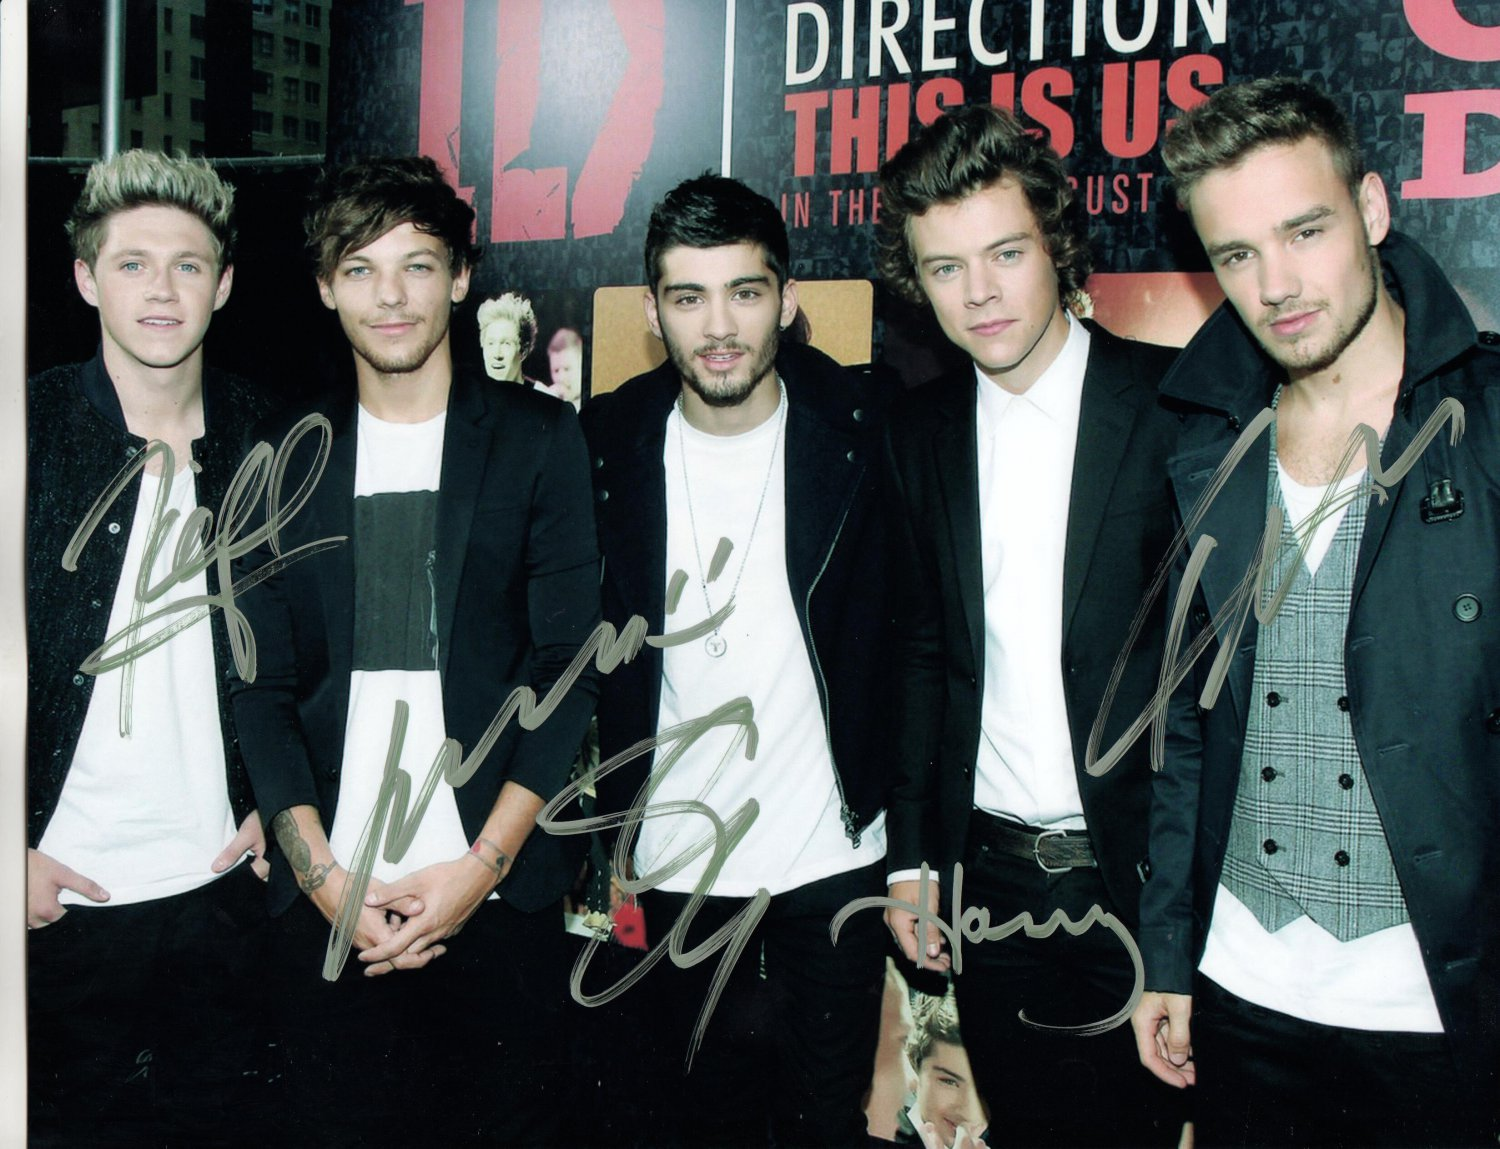 ONE DIRECTION BAND - COMPLETE ORIGINAL MEMBERS - ALL HAND SIGNED AUTOGRAPHED PHOTO WITH COA